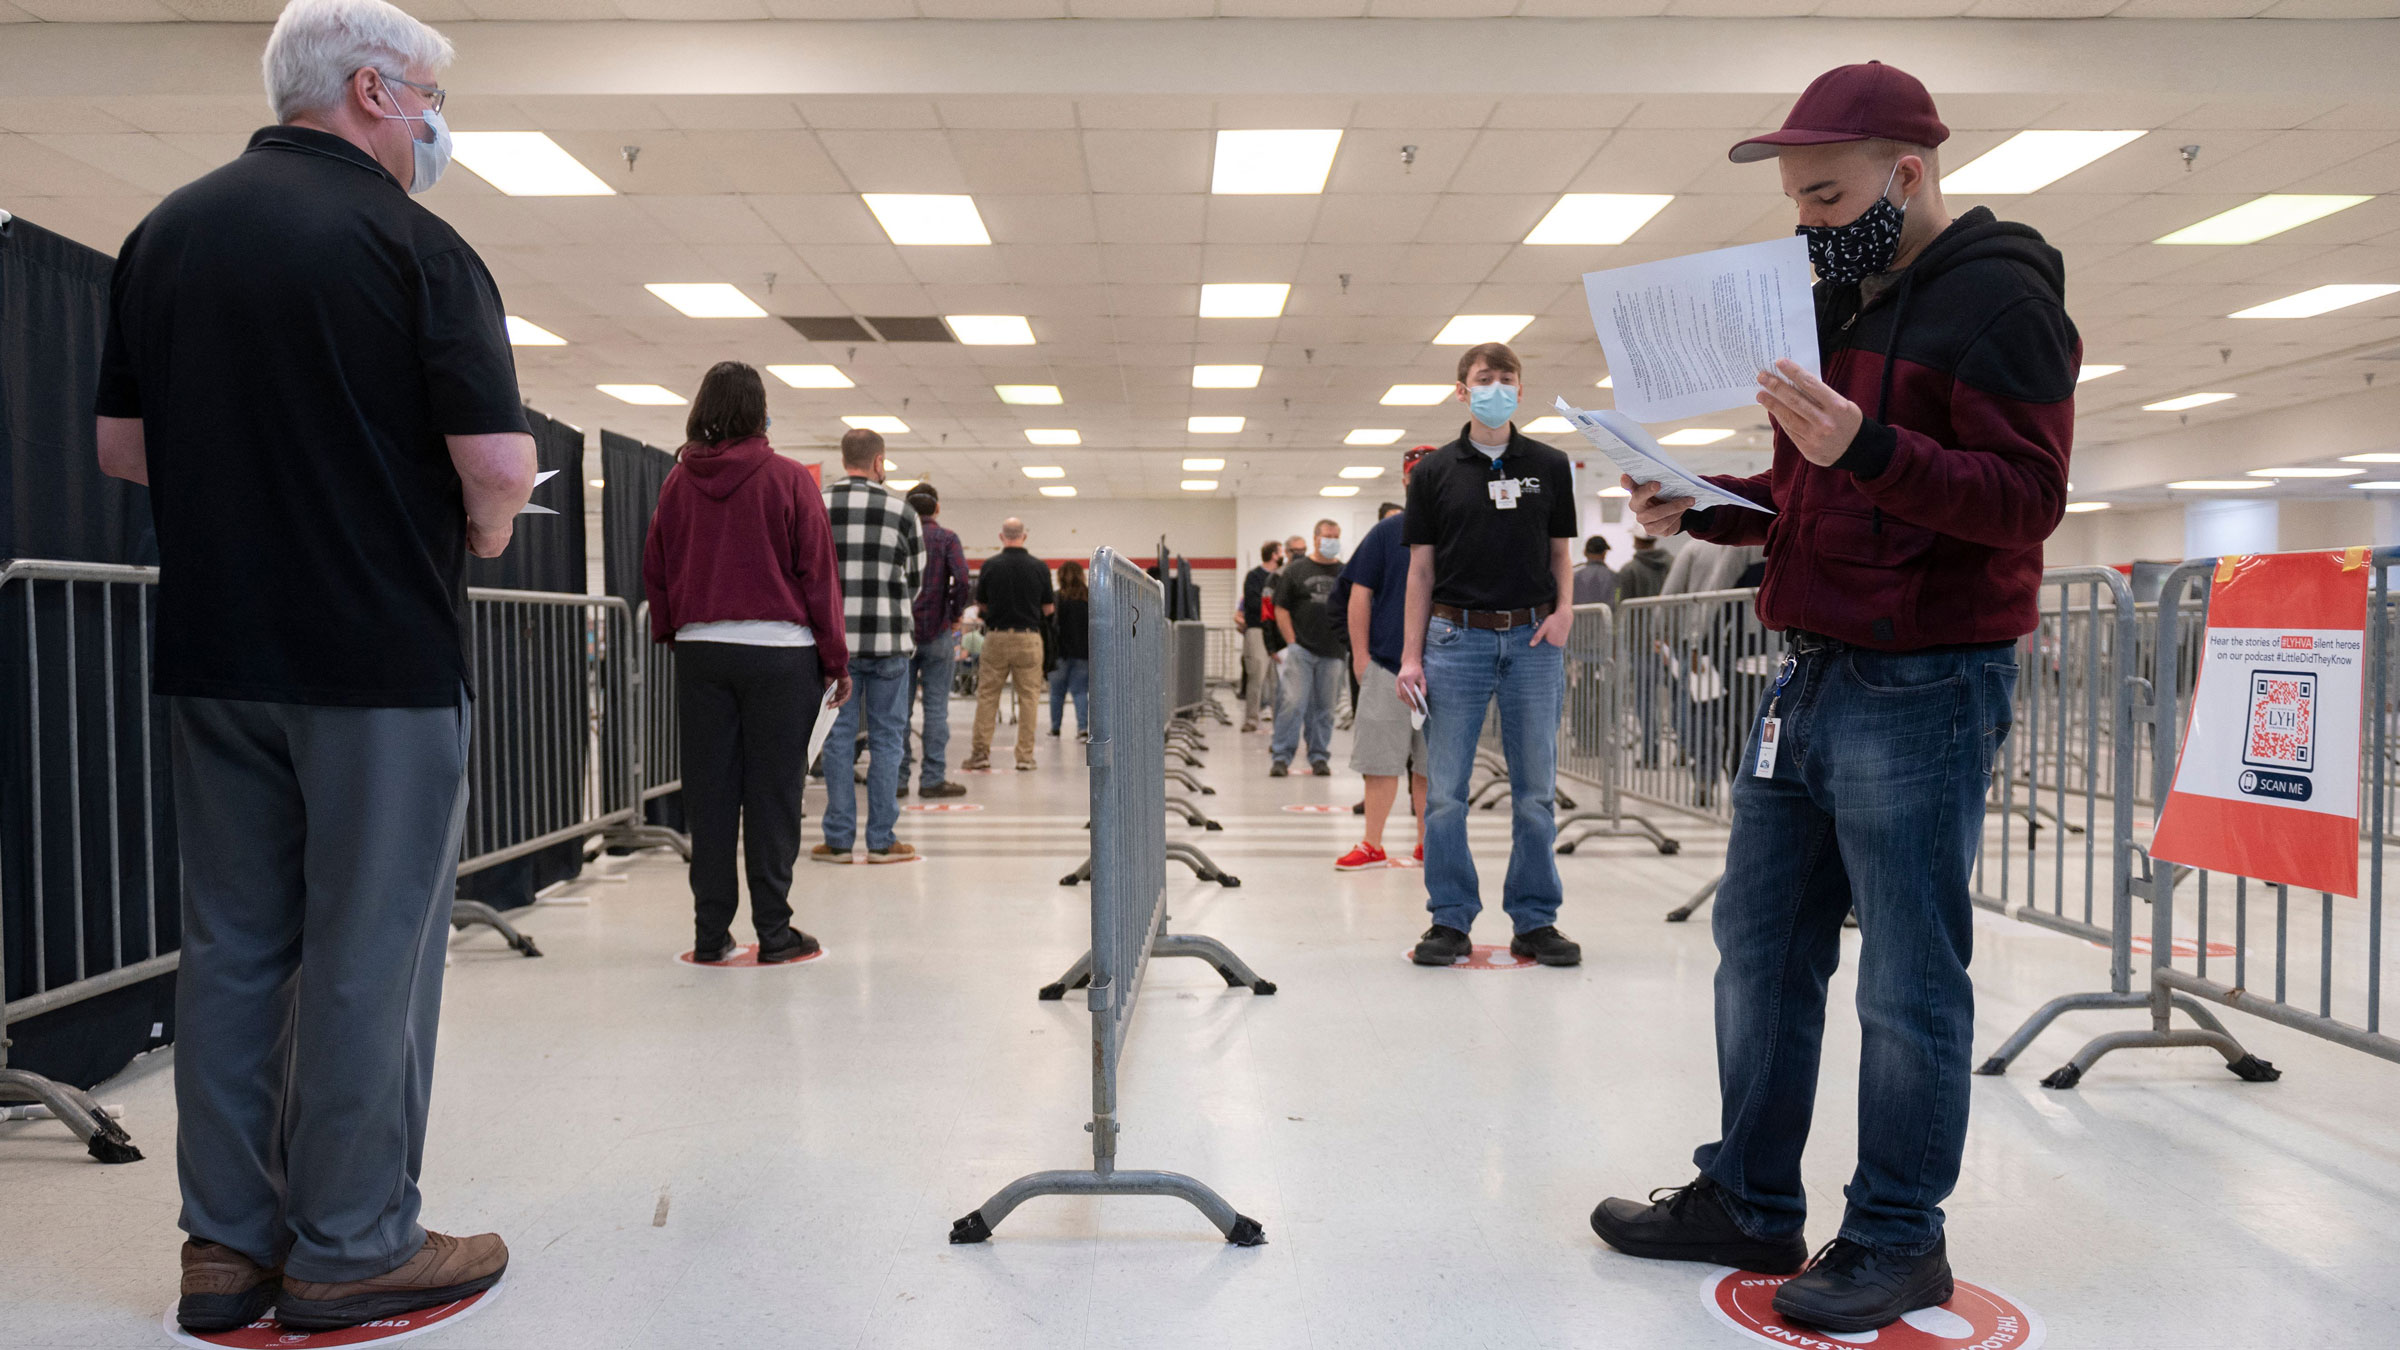 People wait in line to get a Covid-19 vaccine in Lynchburg, Virginia, on March 13.